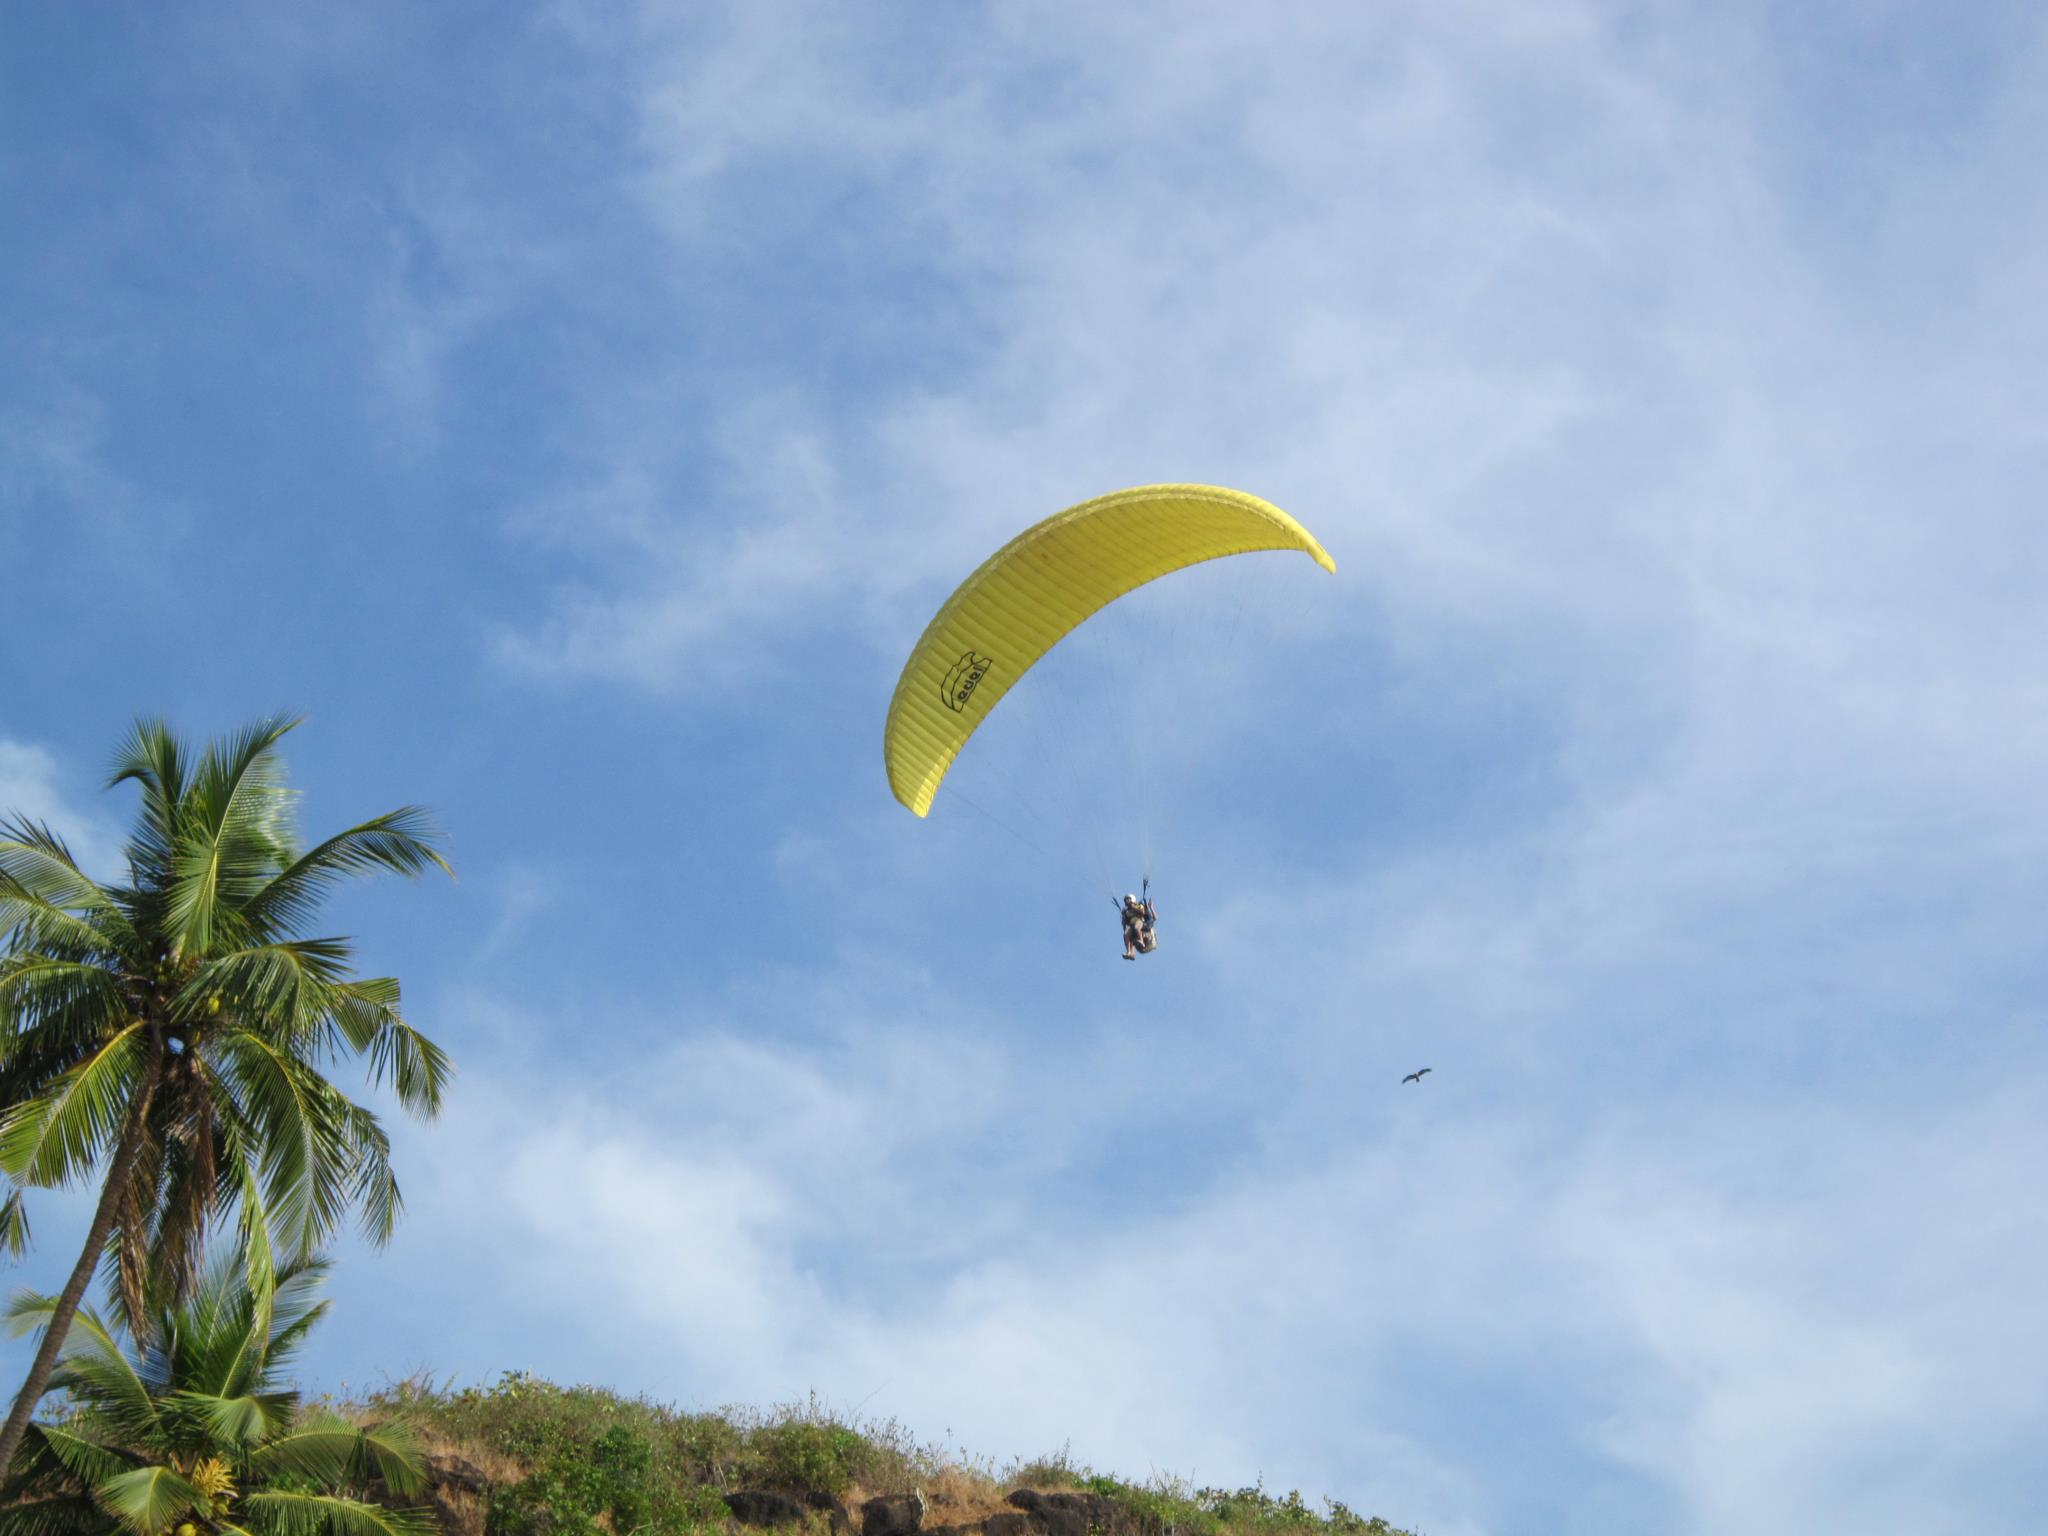 Paragliding at Colva Beach in Goa